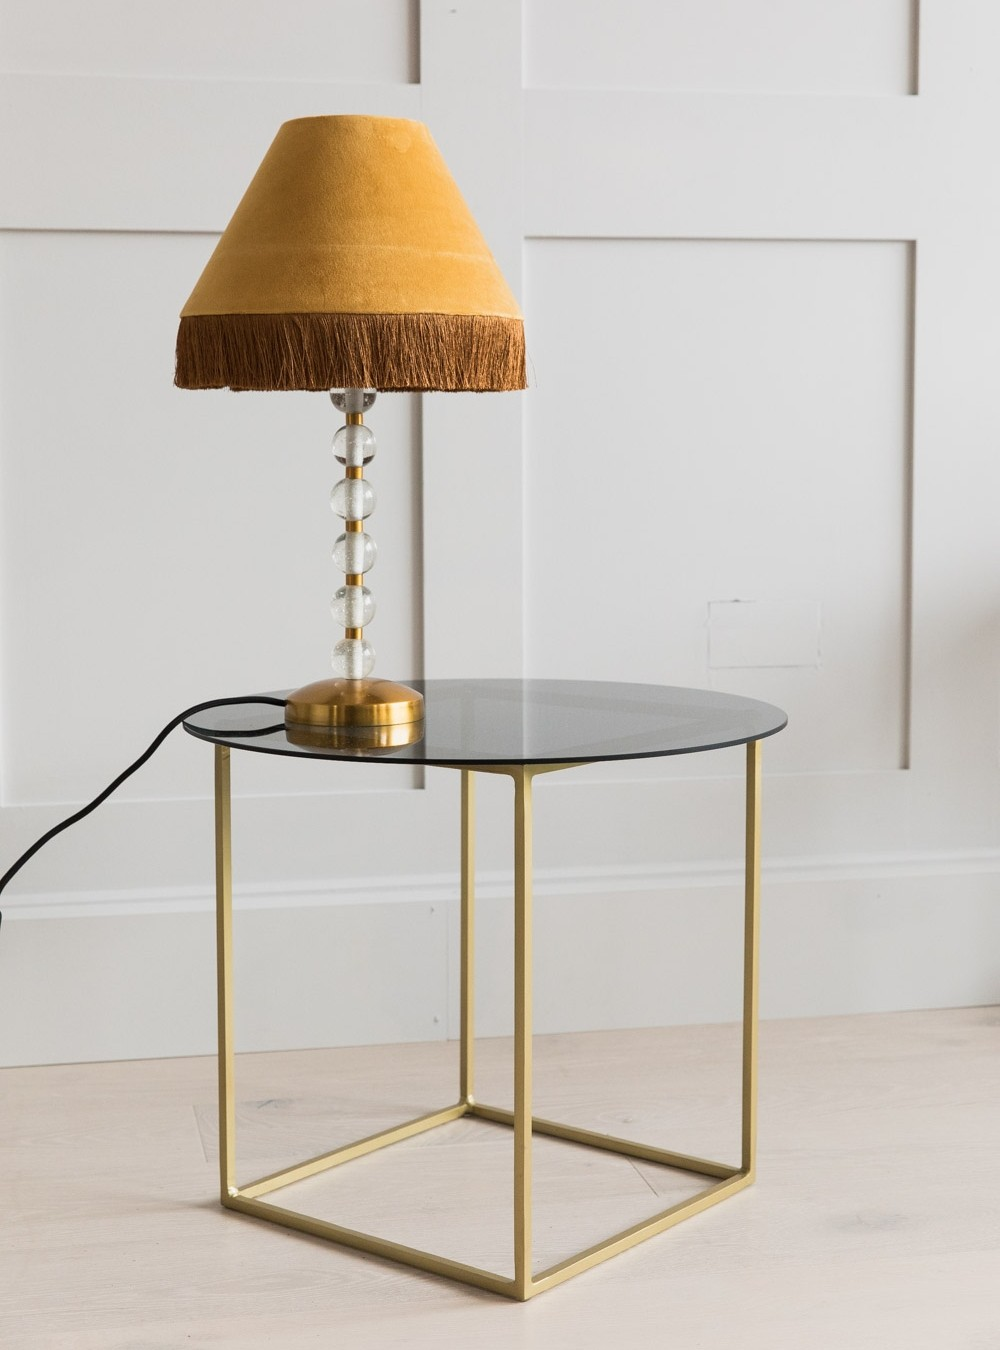 sofia brass smoked glass side table rose grey end tables double tap zoom large white crate sofa decor ideas furniture consignment houston coffee with hole middle medusa floor lamp